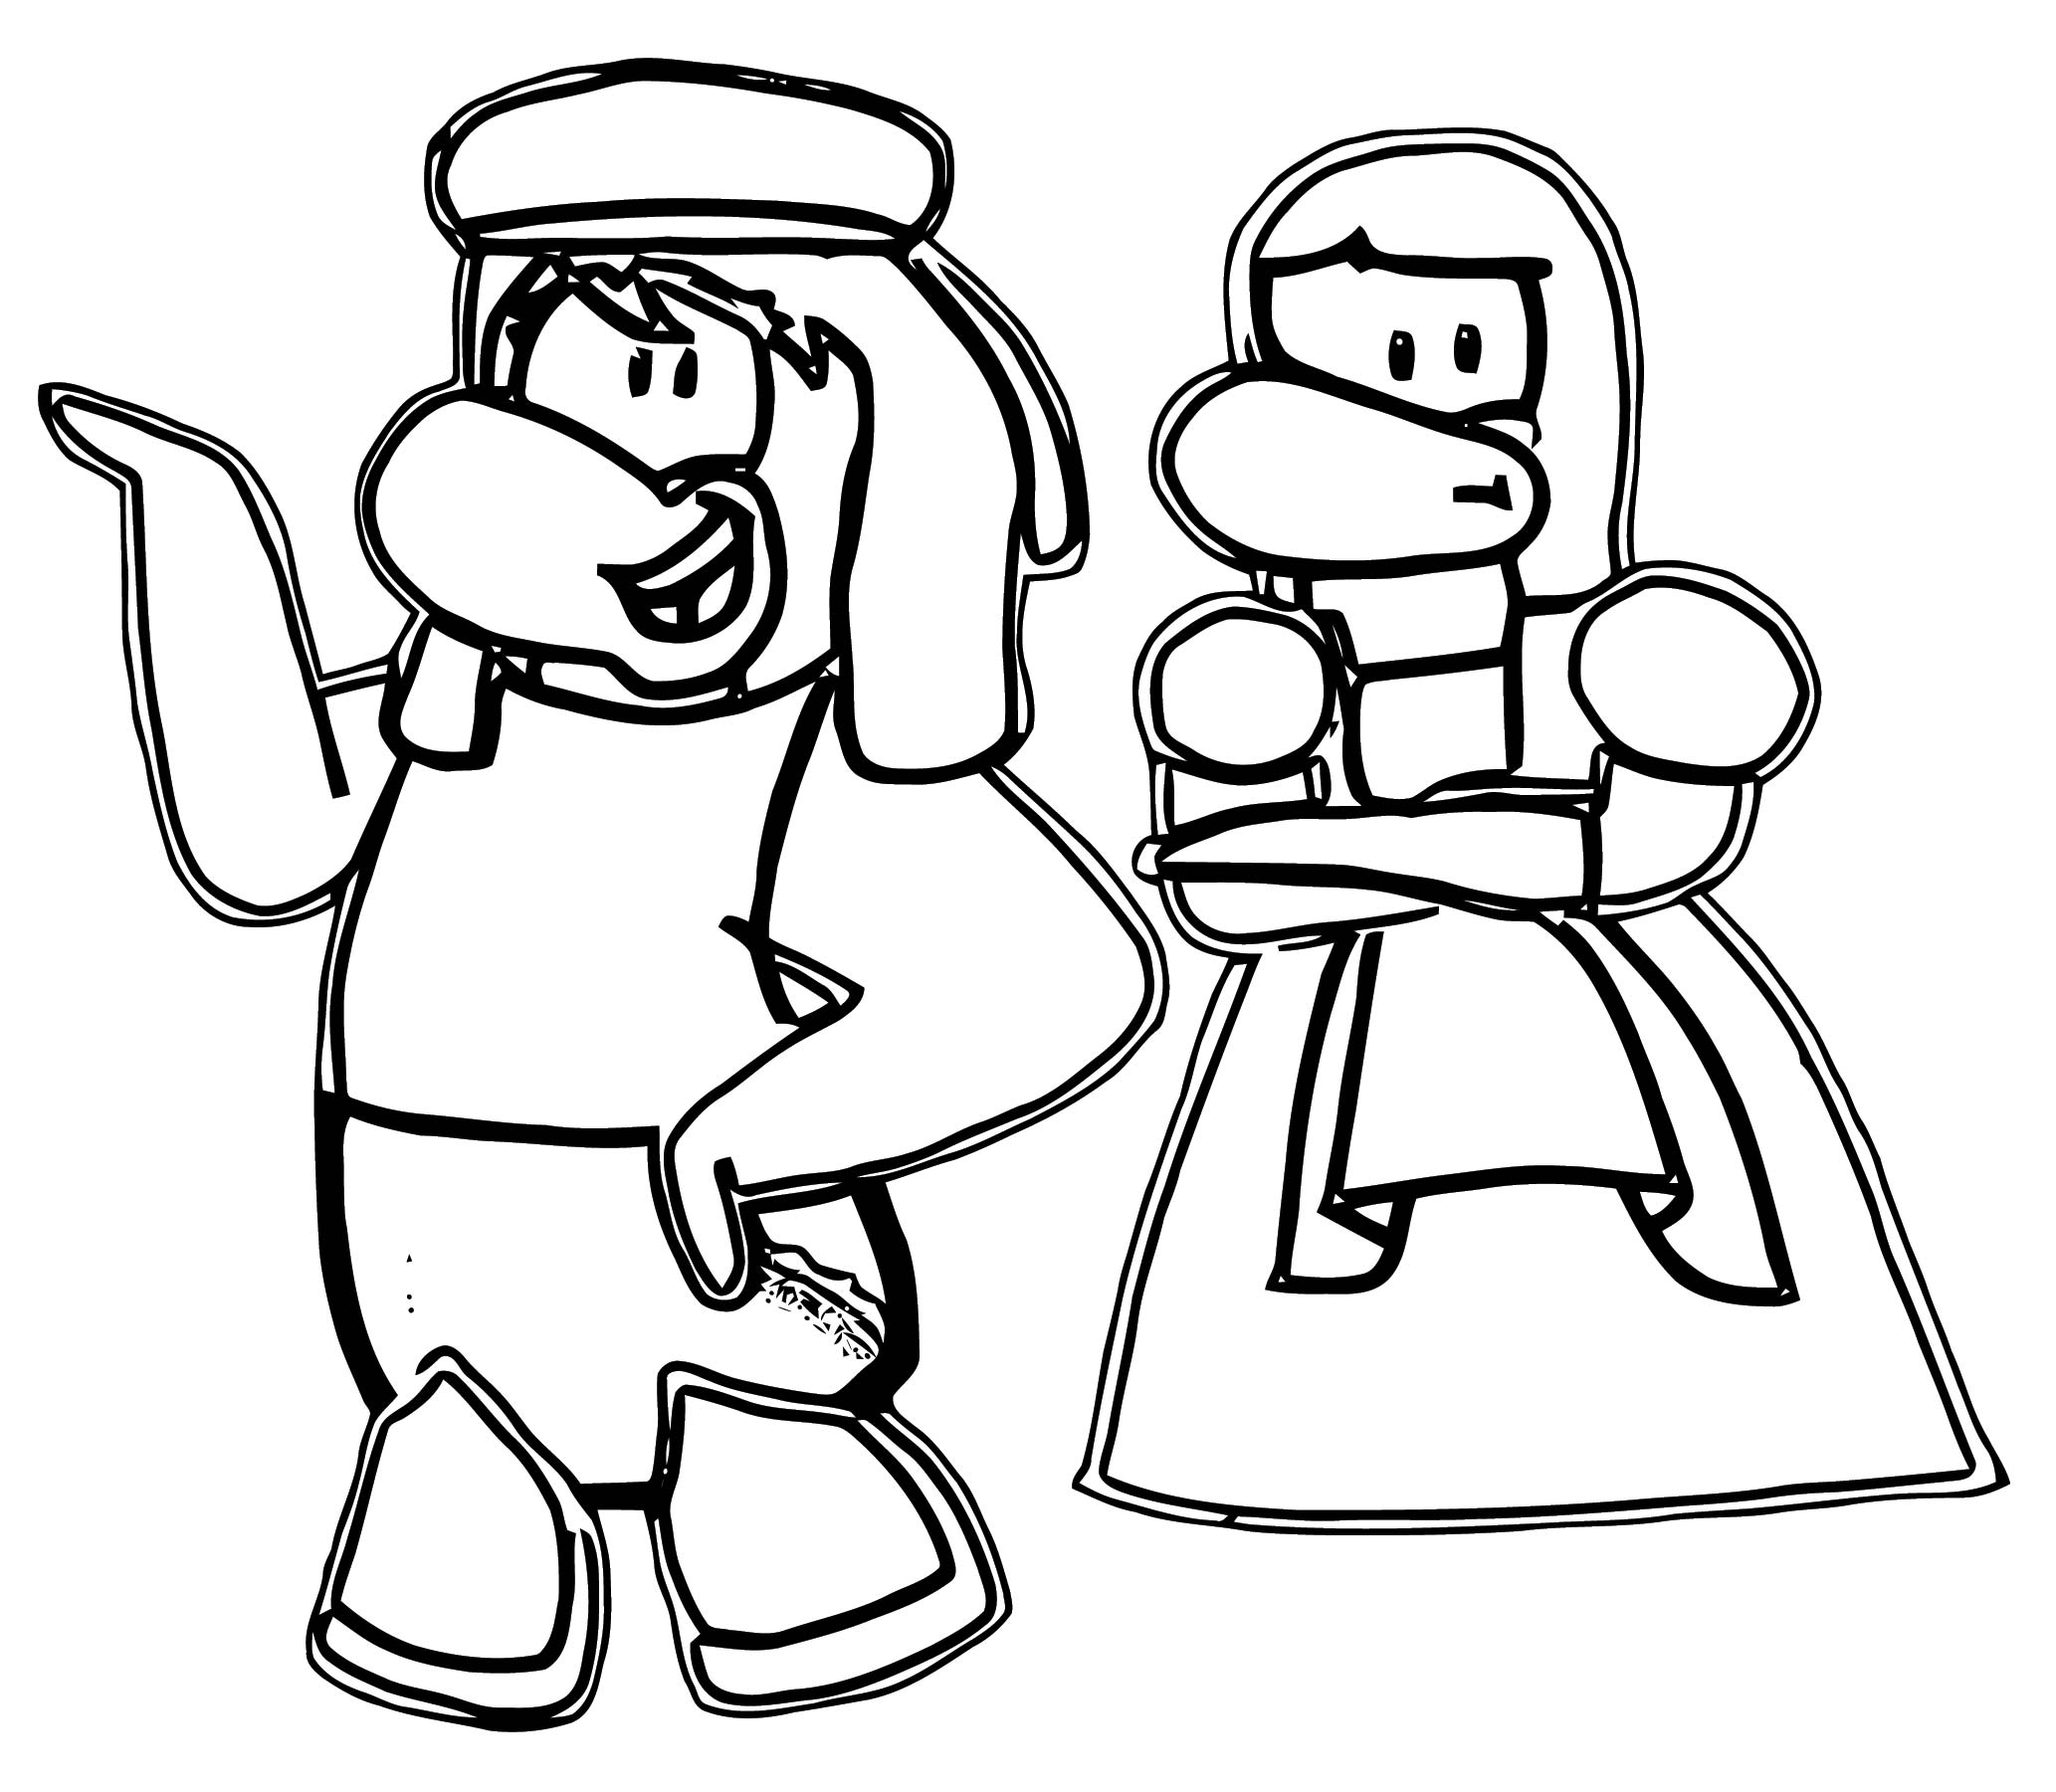 Club Penguin Cadenky Cosplay Steven Universe Coloring Page